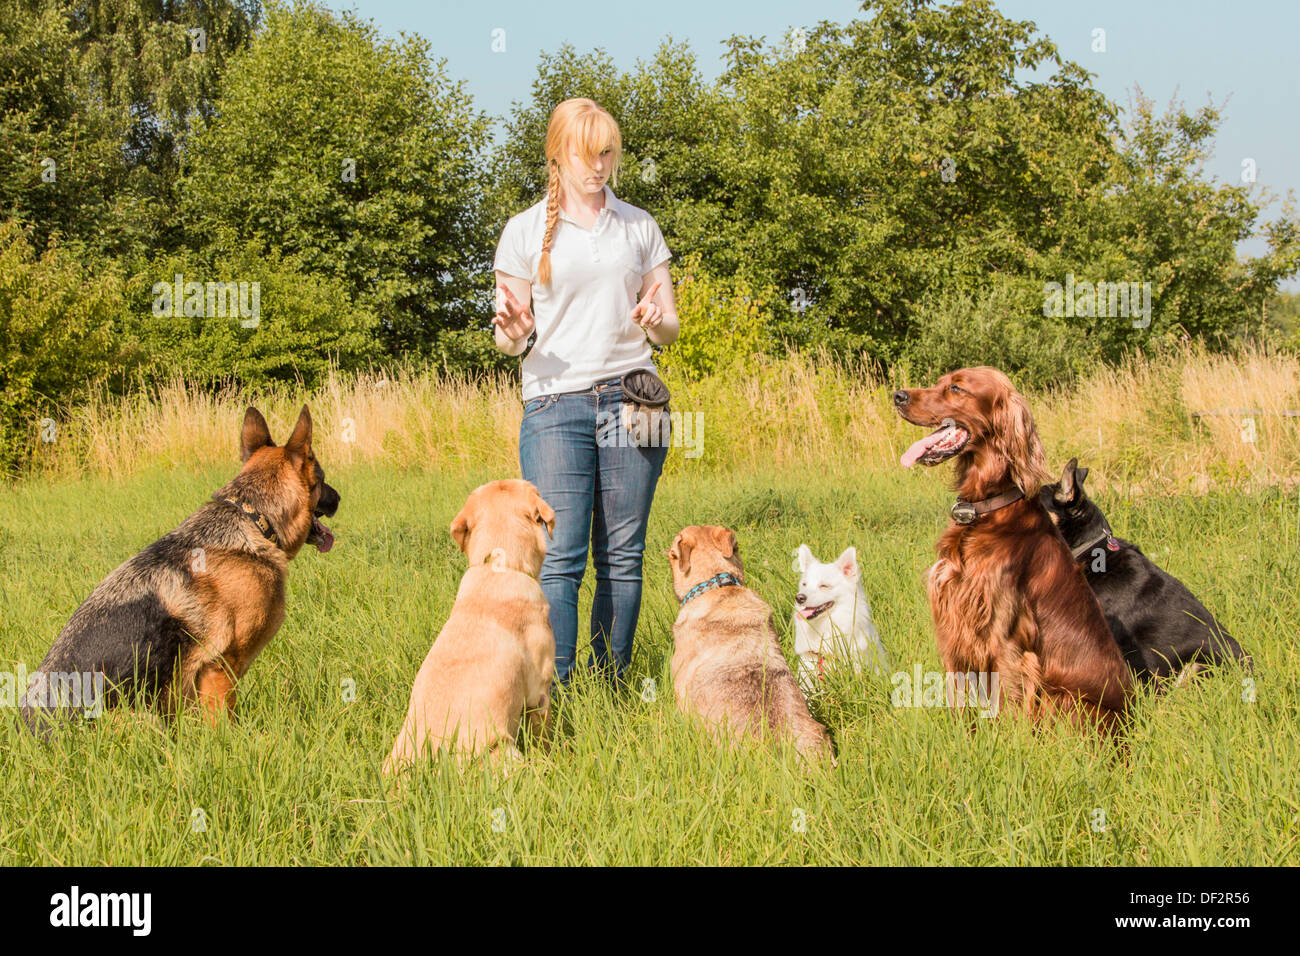 A group of dogs listen to the commands of the dog trainer - Stock Image